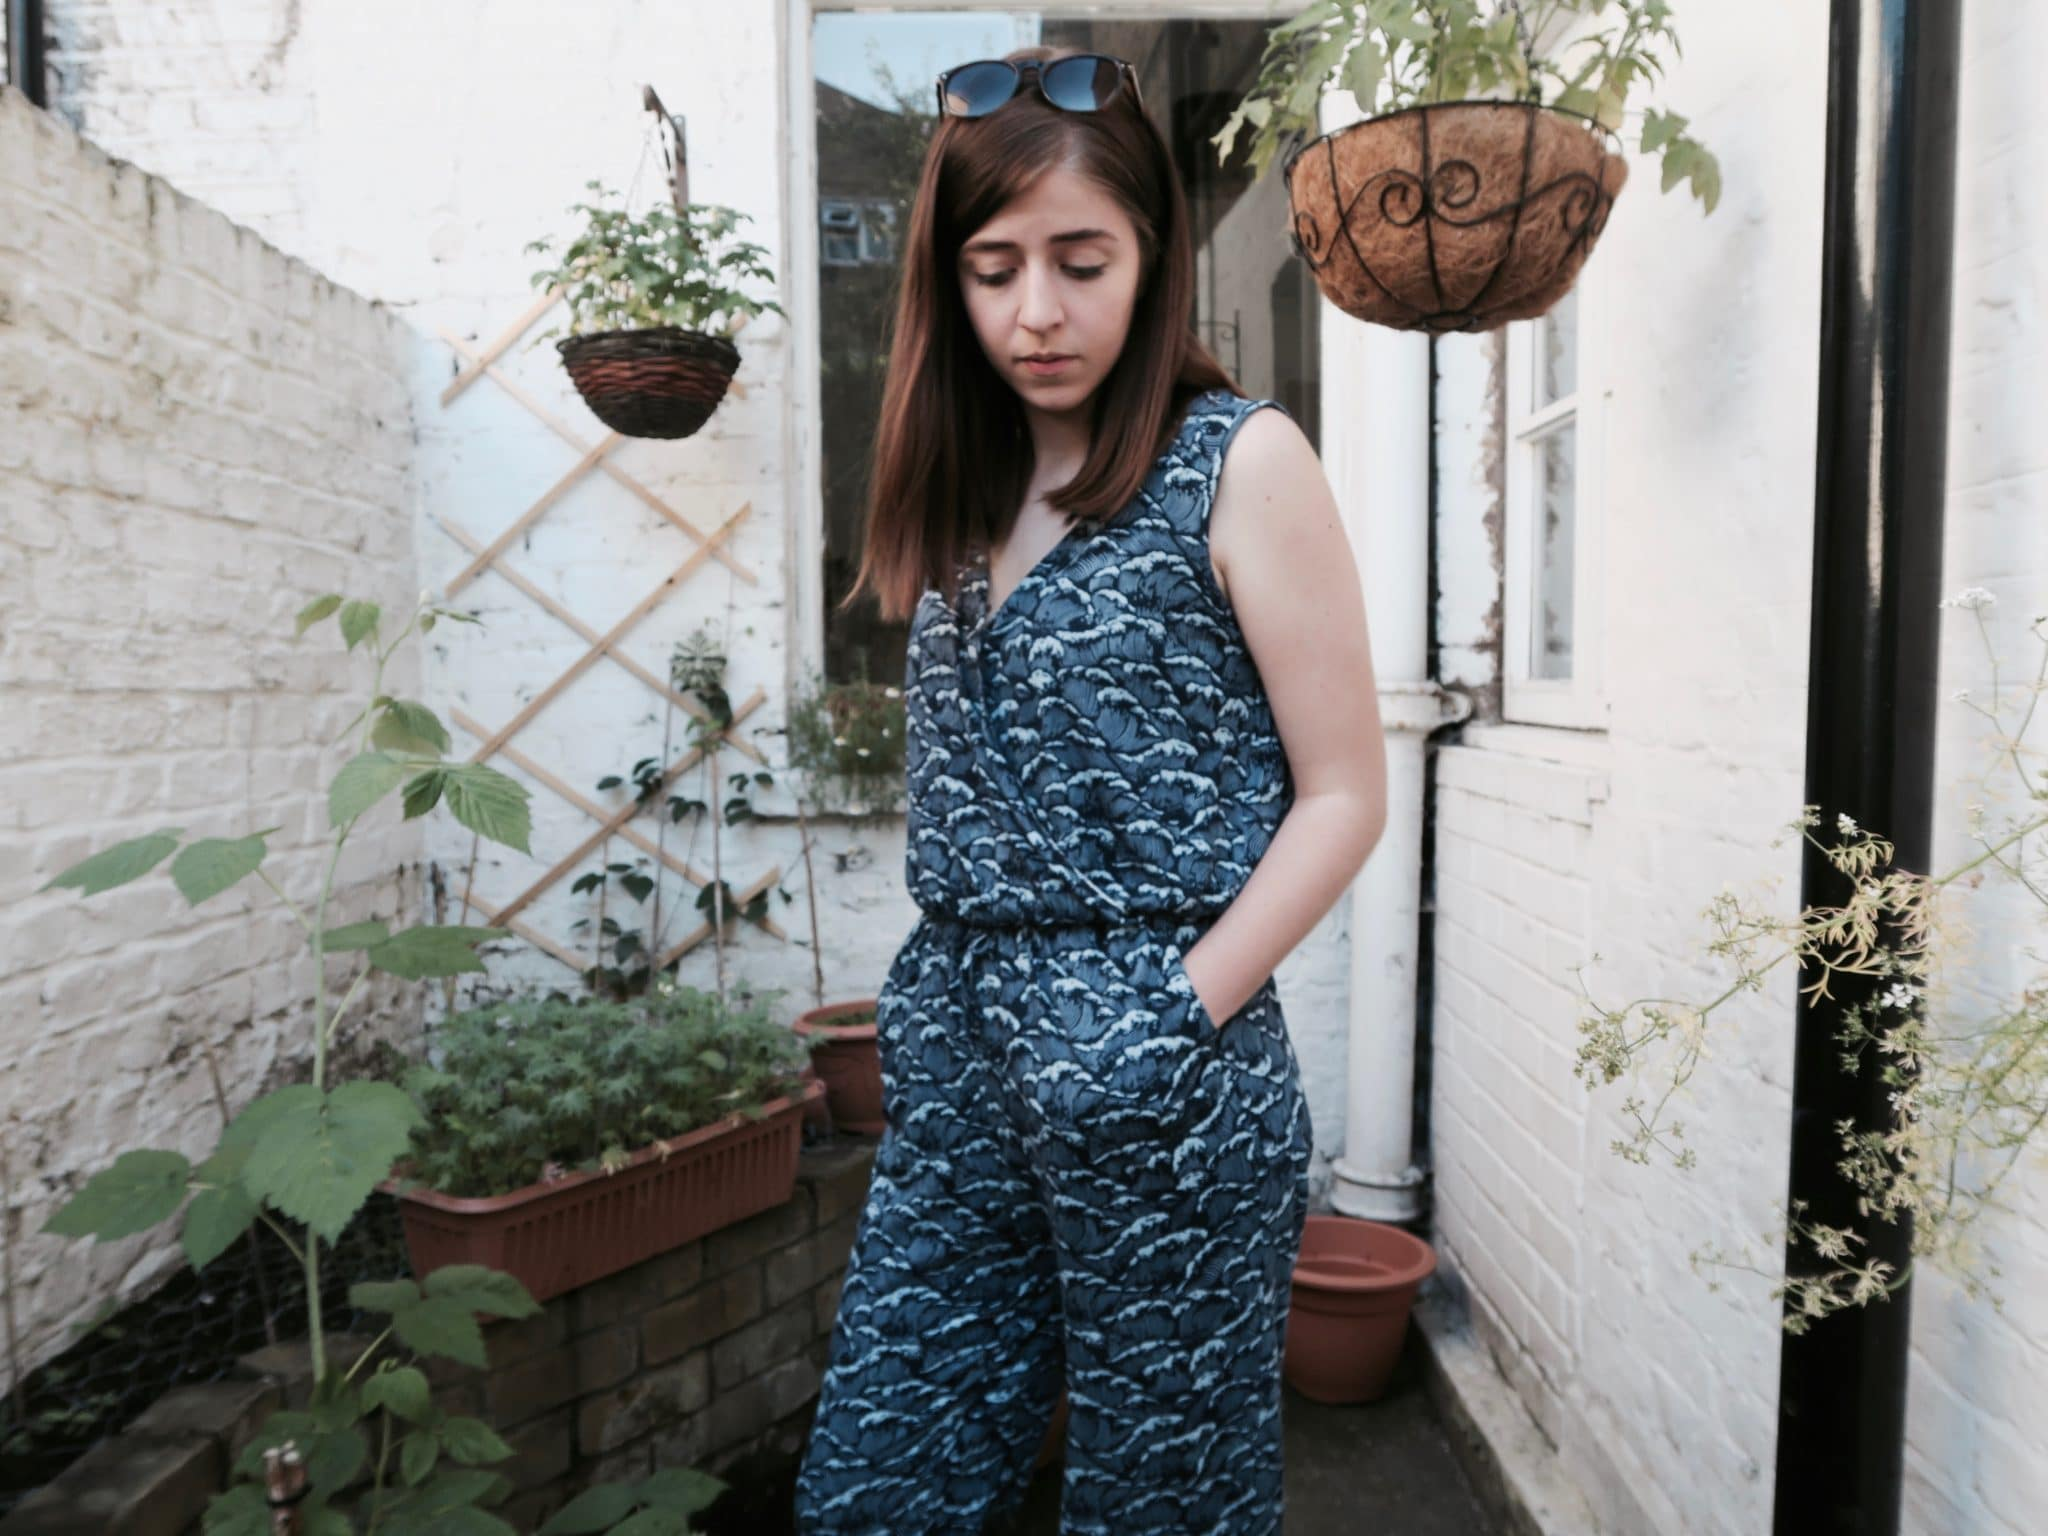 Braintree Jumpsuit from House of Fraser